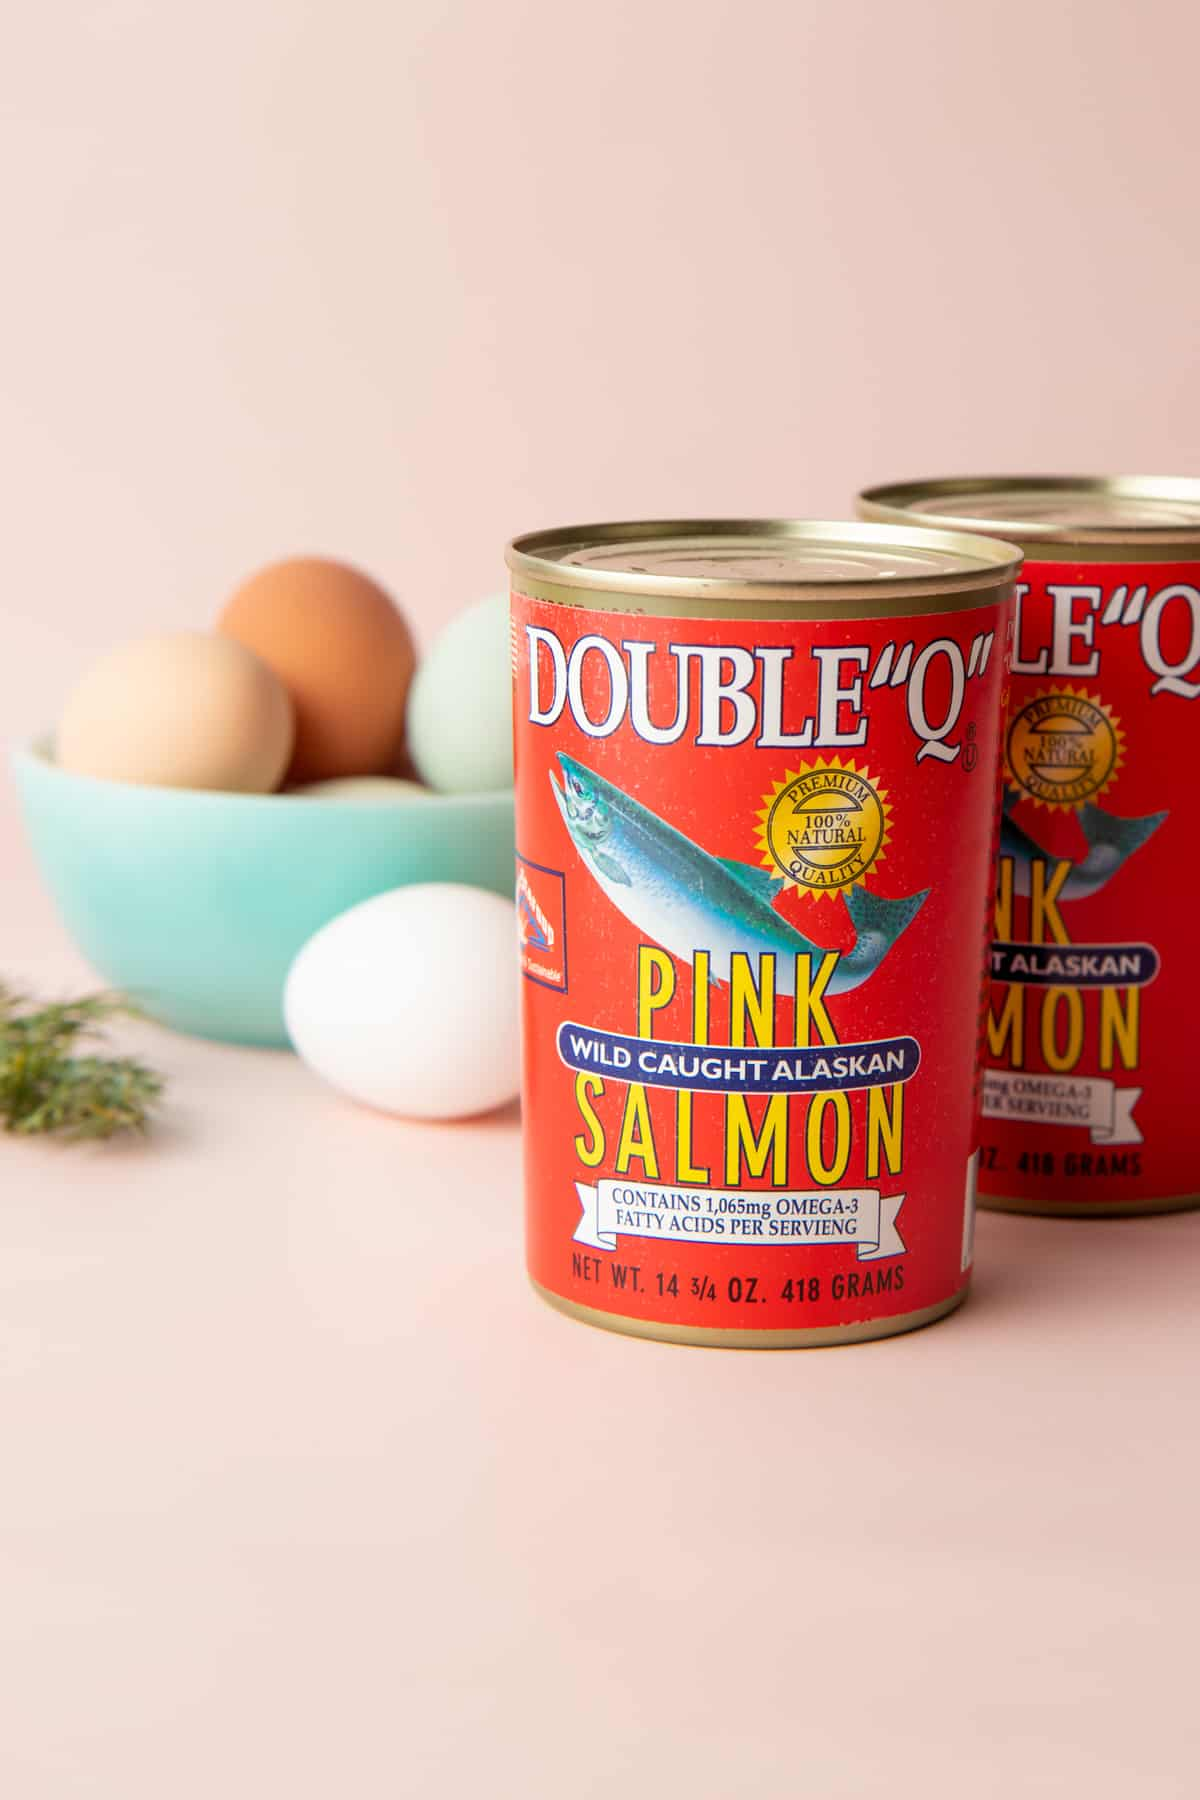 Two cans of Double Q Pink Salmon sit in front of a bowl of eggs.